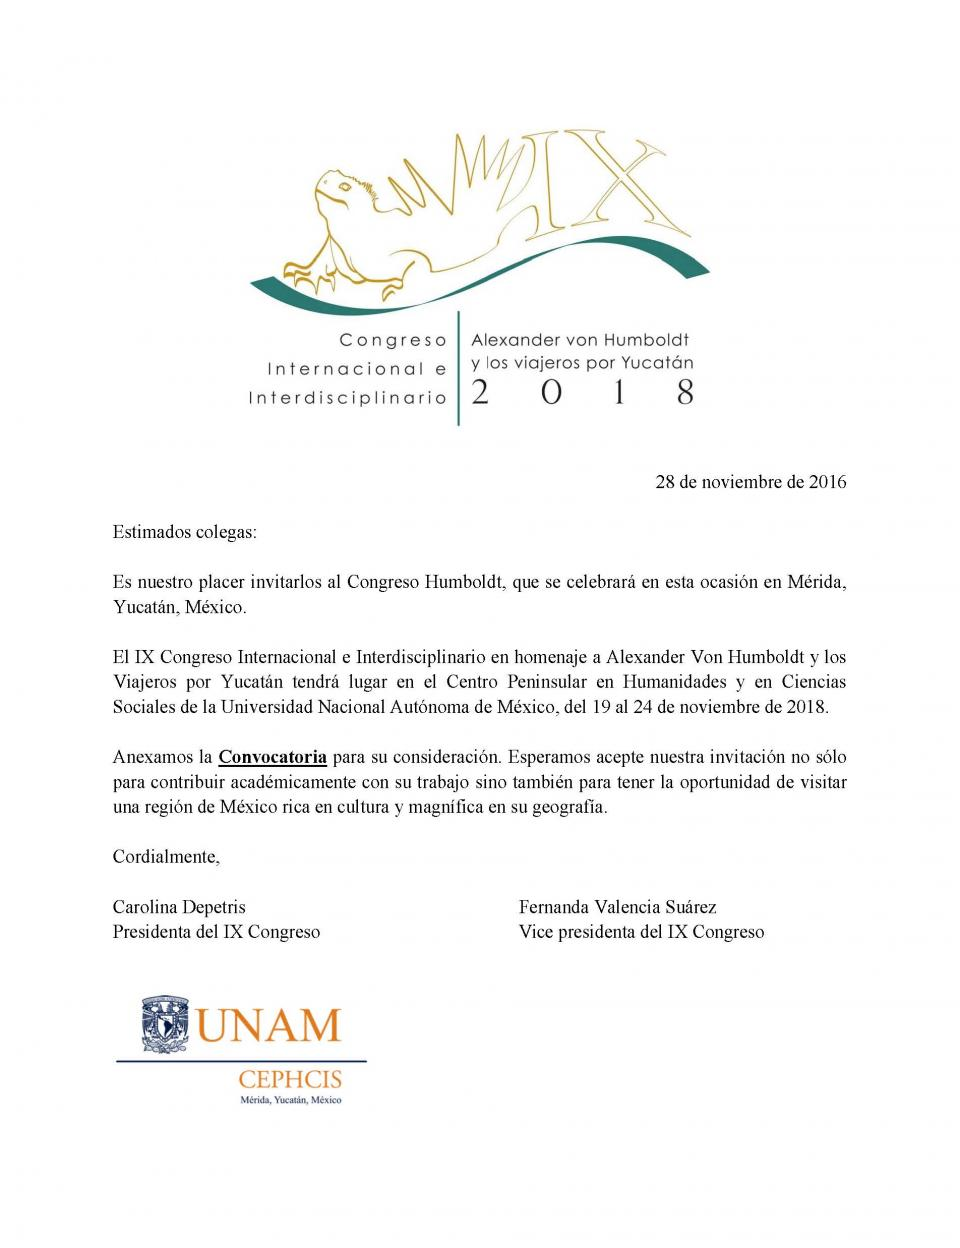 von Humboldt conference invitation